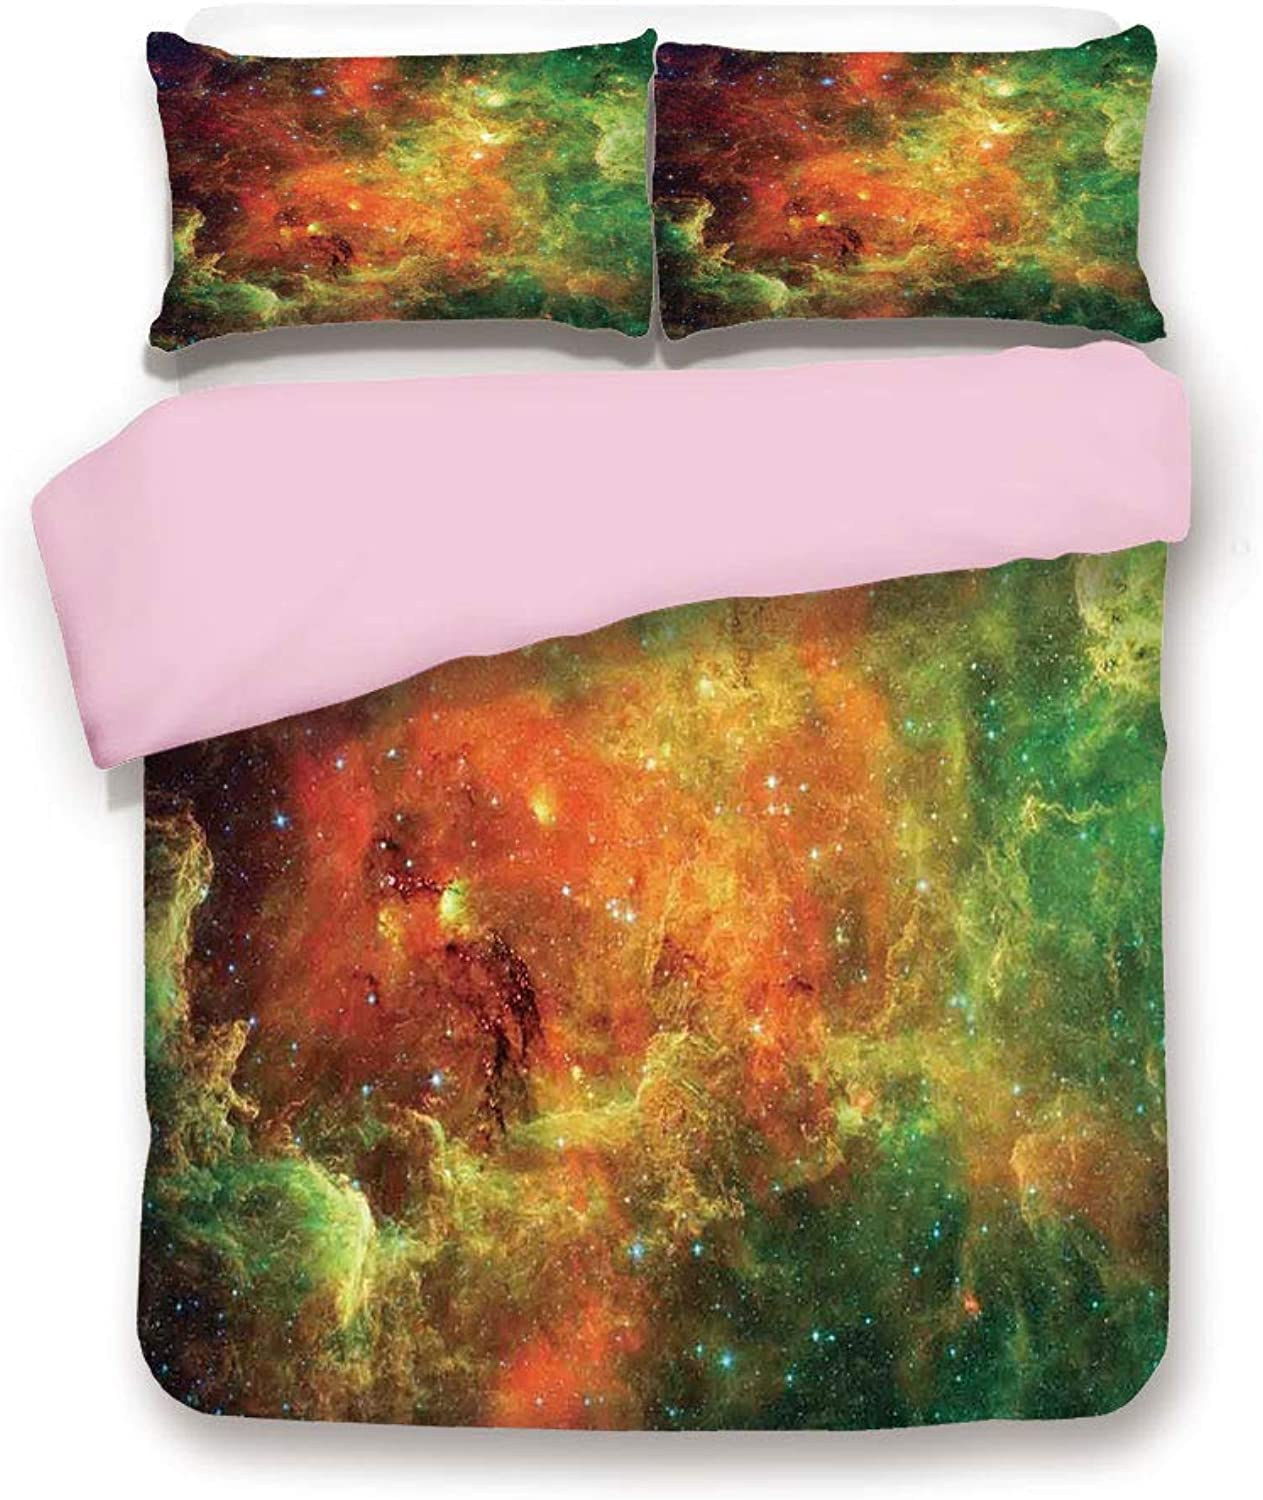 Pink Duvet Cover Set,Twin Size,North American and Pelican Nebula Gas Cosmic Planetary Object in Outer Space Decor,Decorative 3 Piece Bedding Set with 2 Pillow Sham,Best Gift For Girls Women,orange Gre